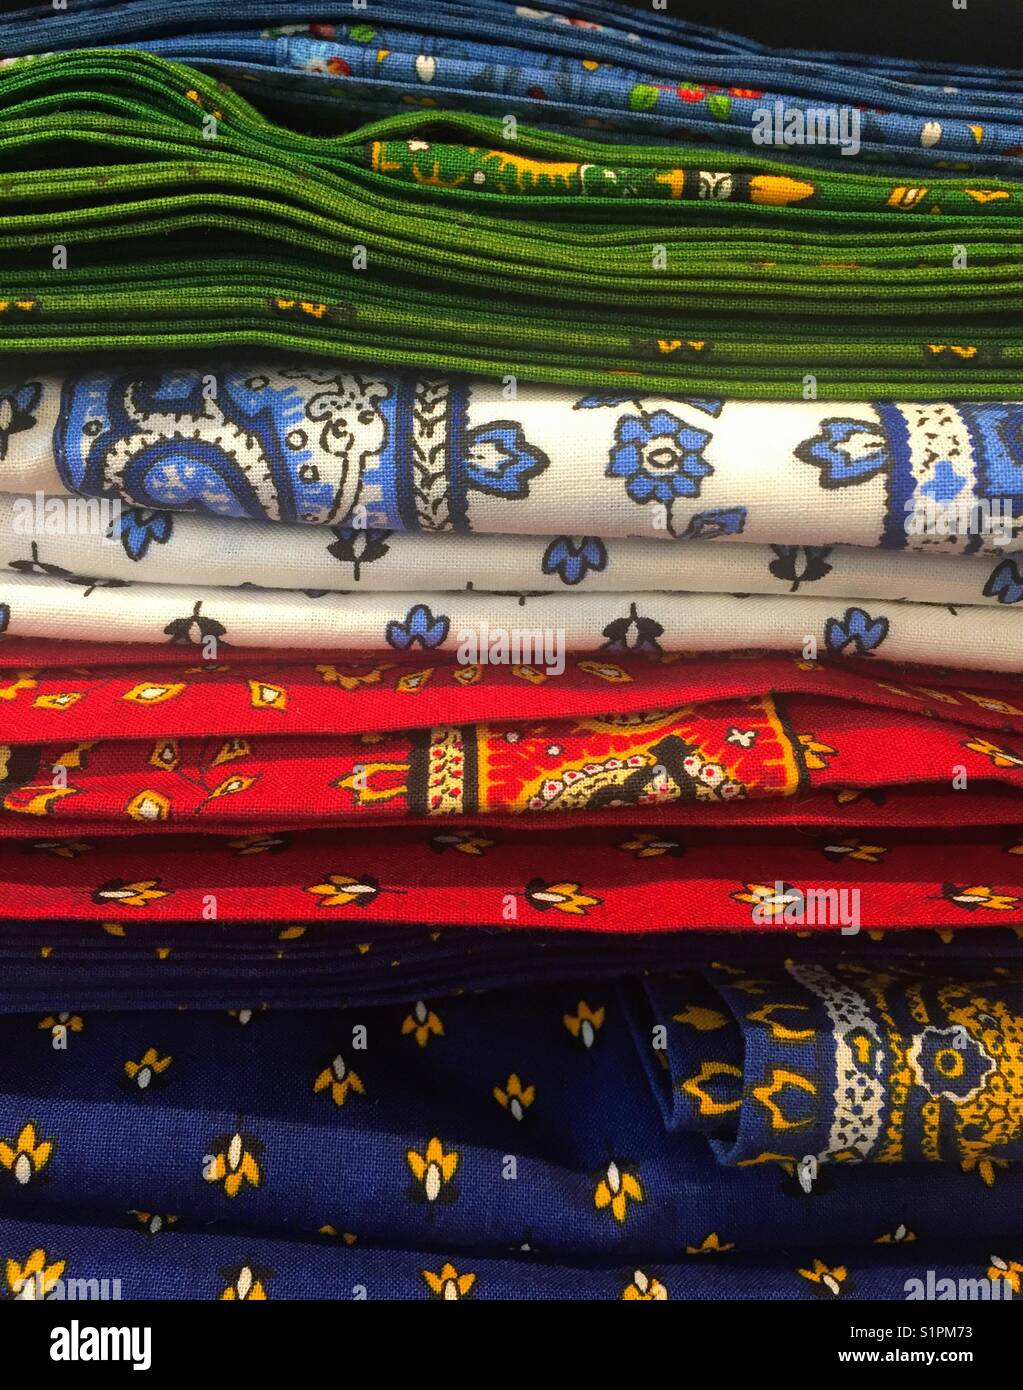 Colorful, cotton scarves  in a stack. Beautiful abstract designs. - Stock Image